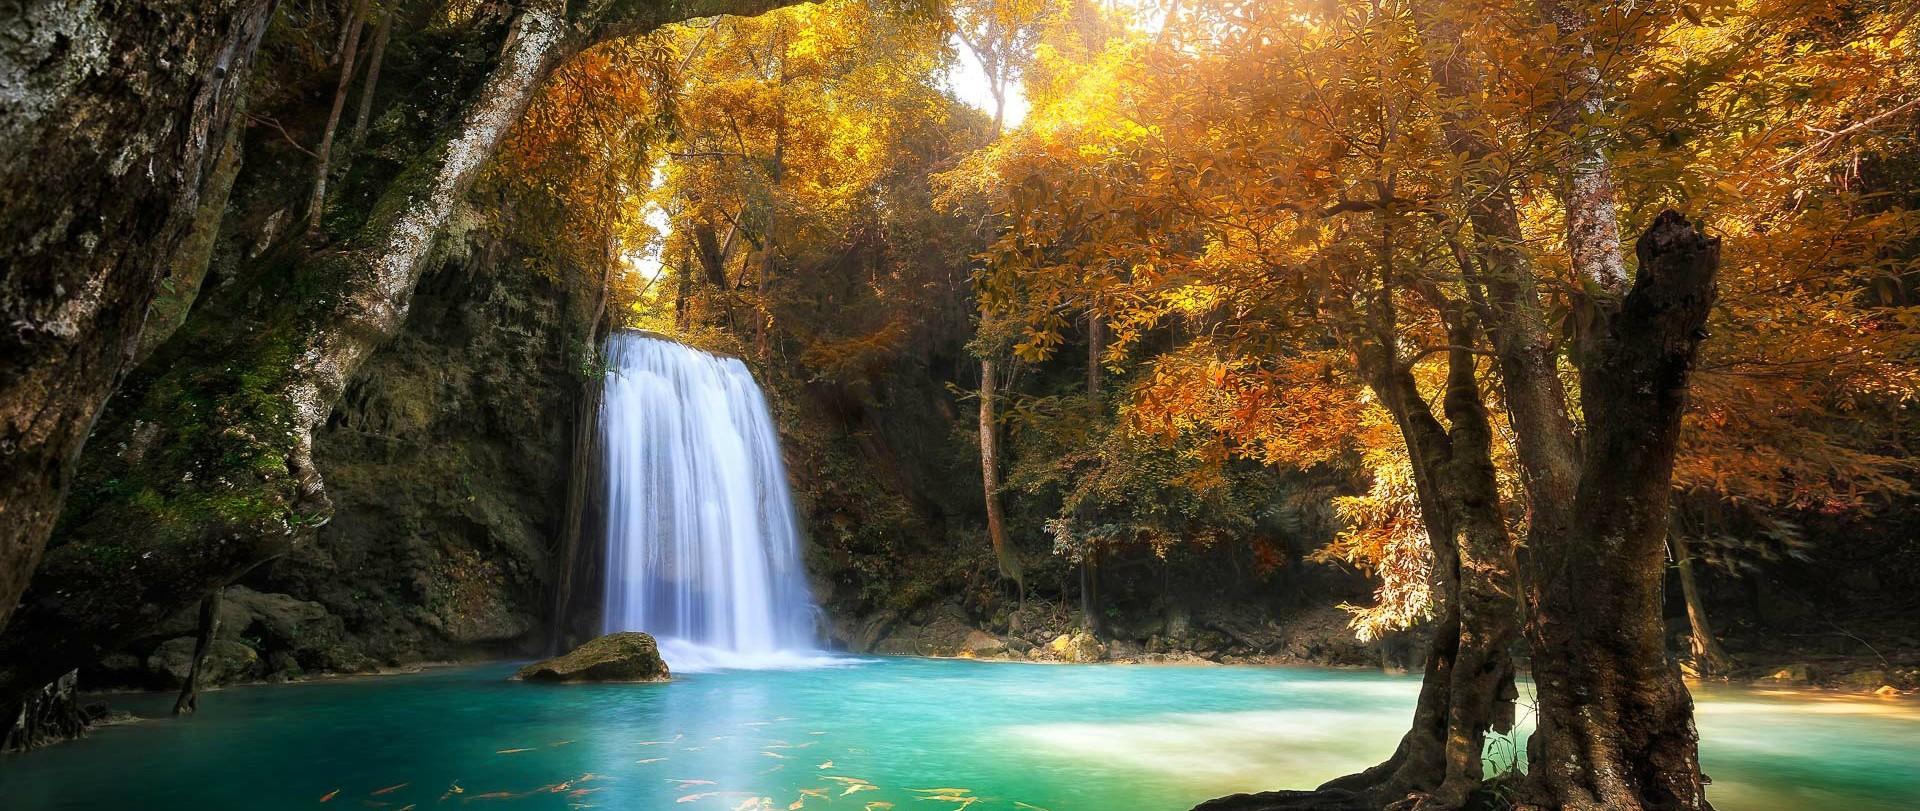 Beautiful Water Fall Scenery Wallpapers Outdoors River Water Waterfall Fountain Resized By Ze